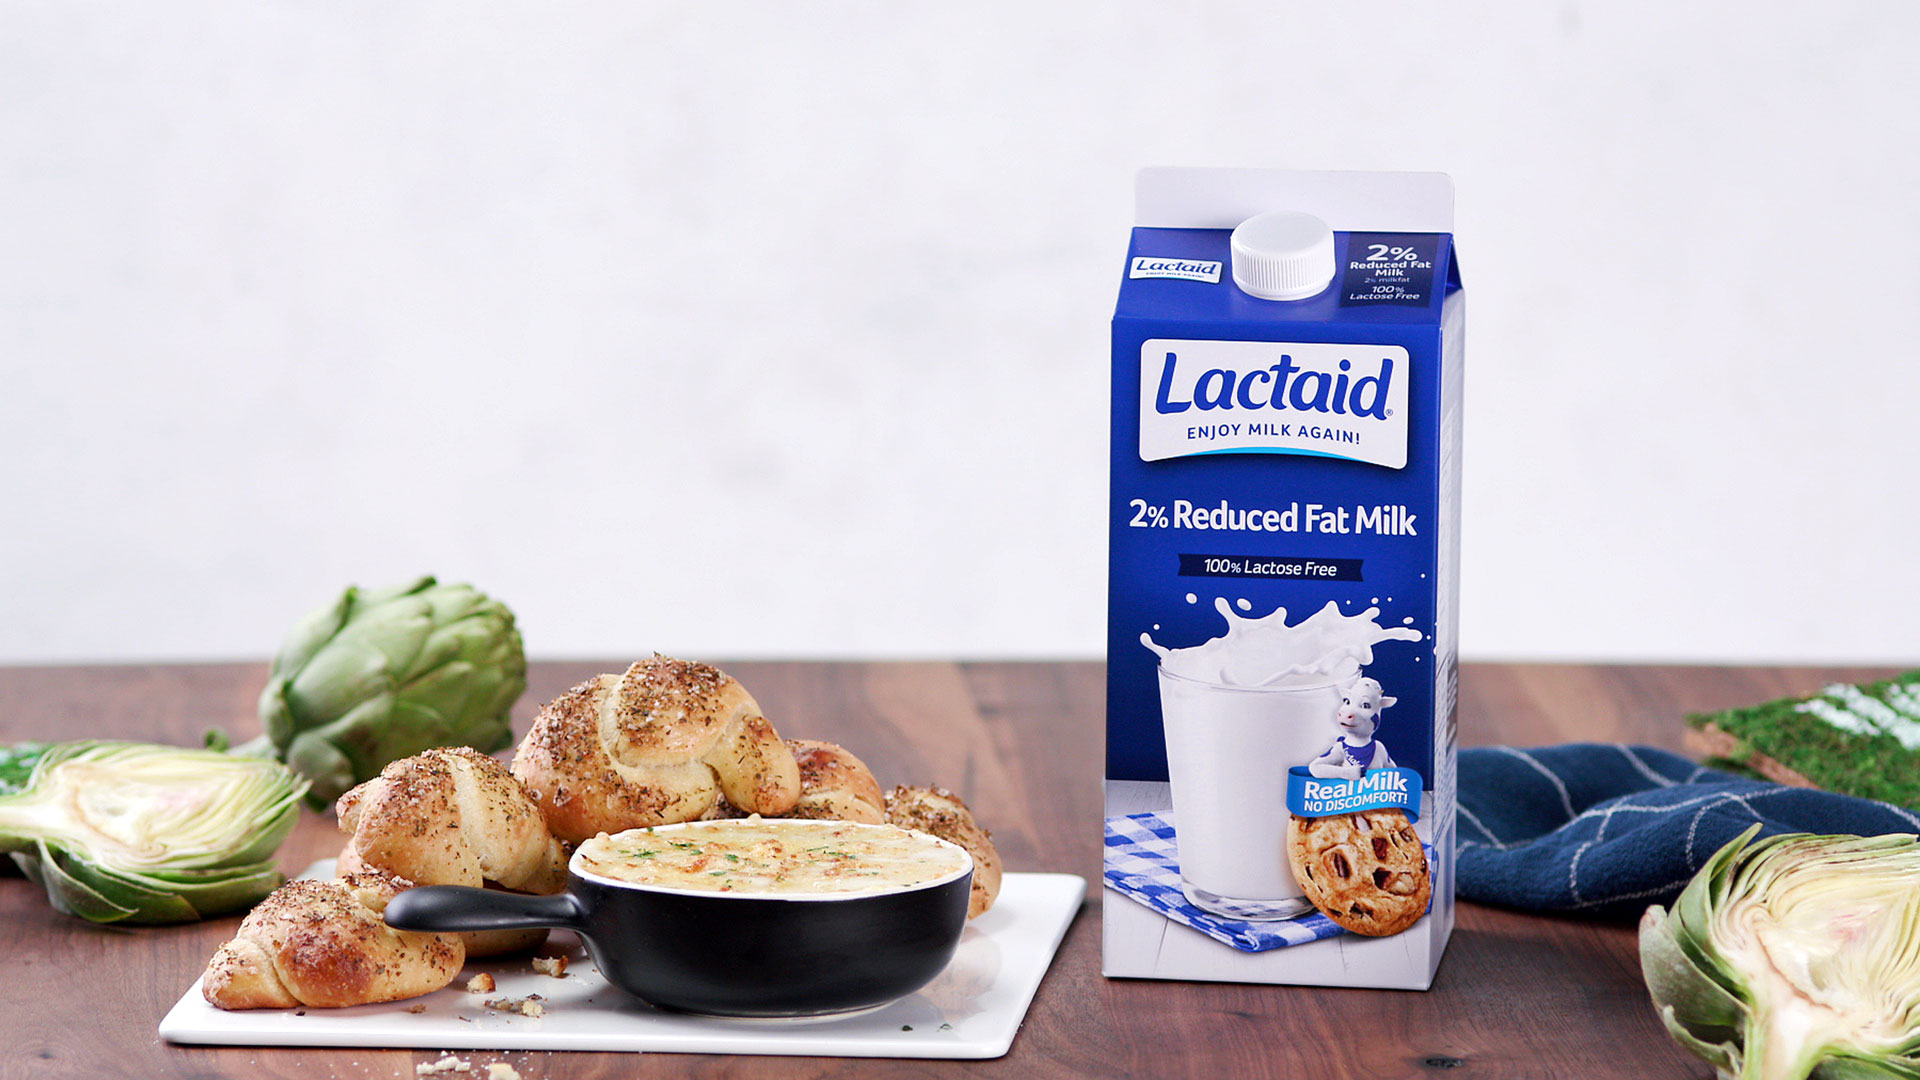 Artichoke Dip and Garlic Knots made with Lactaid®